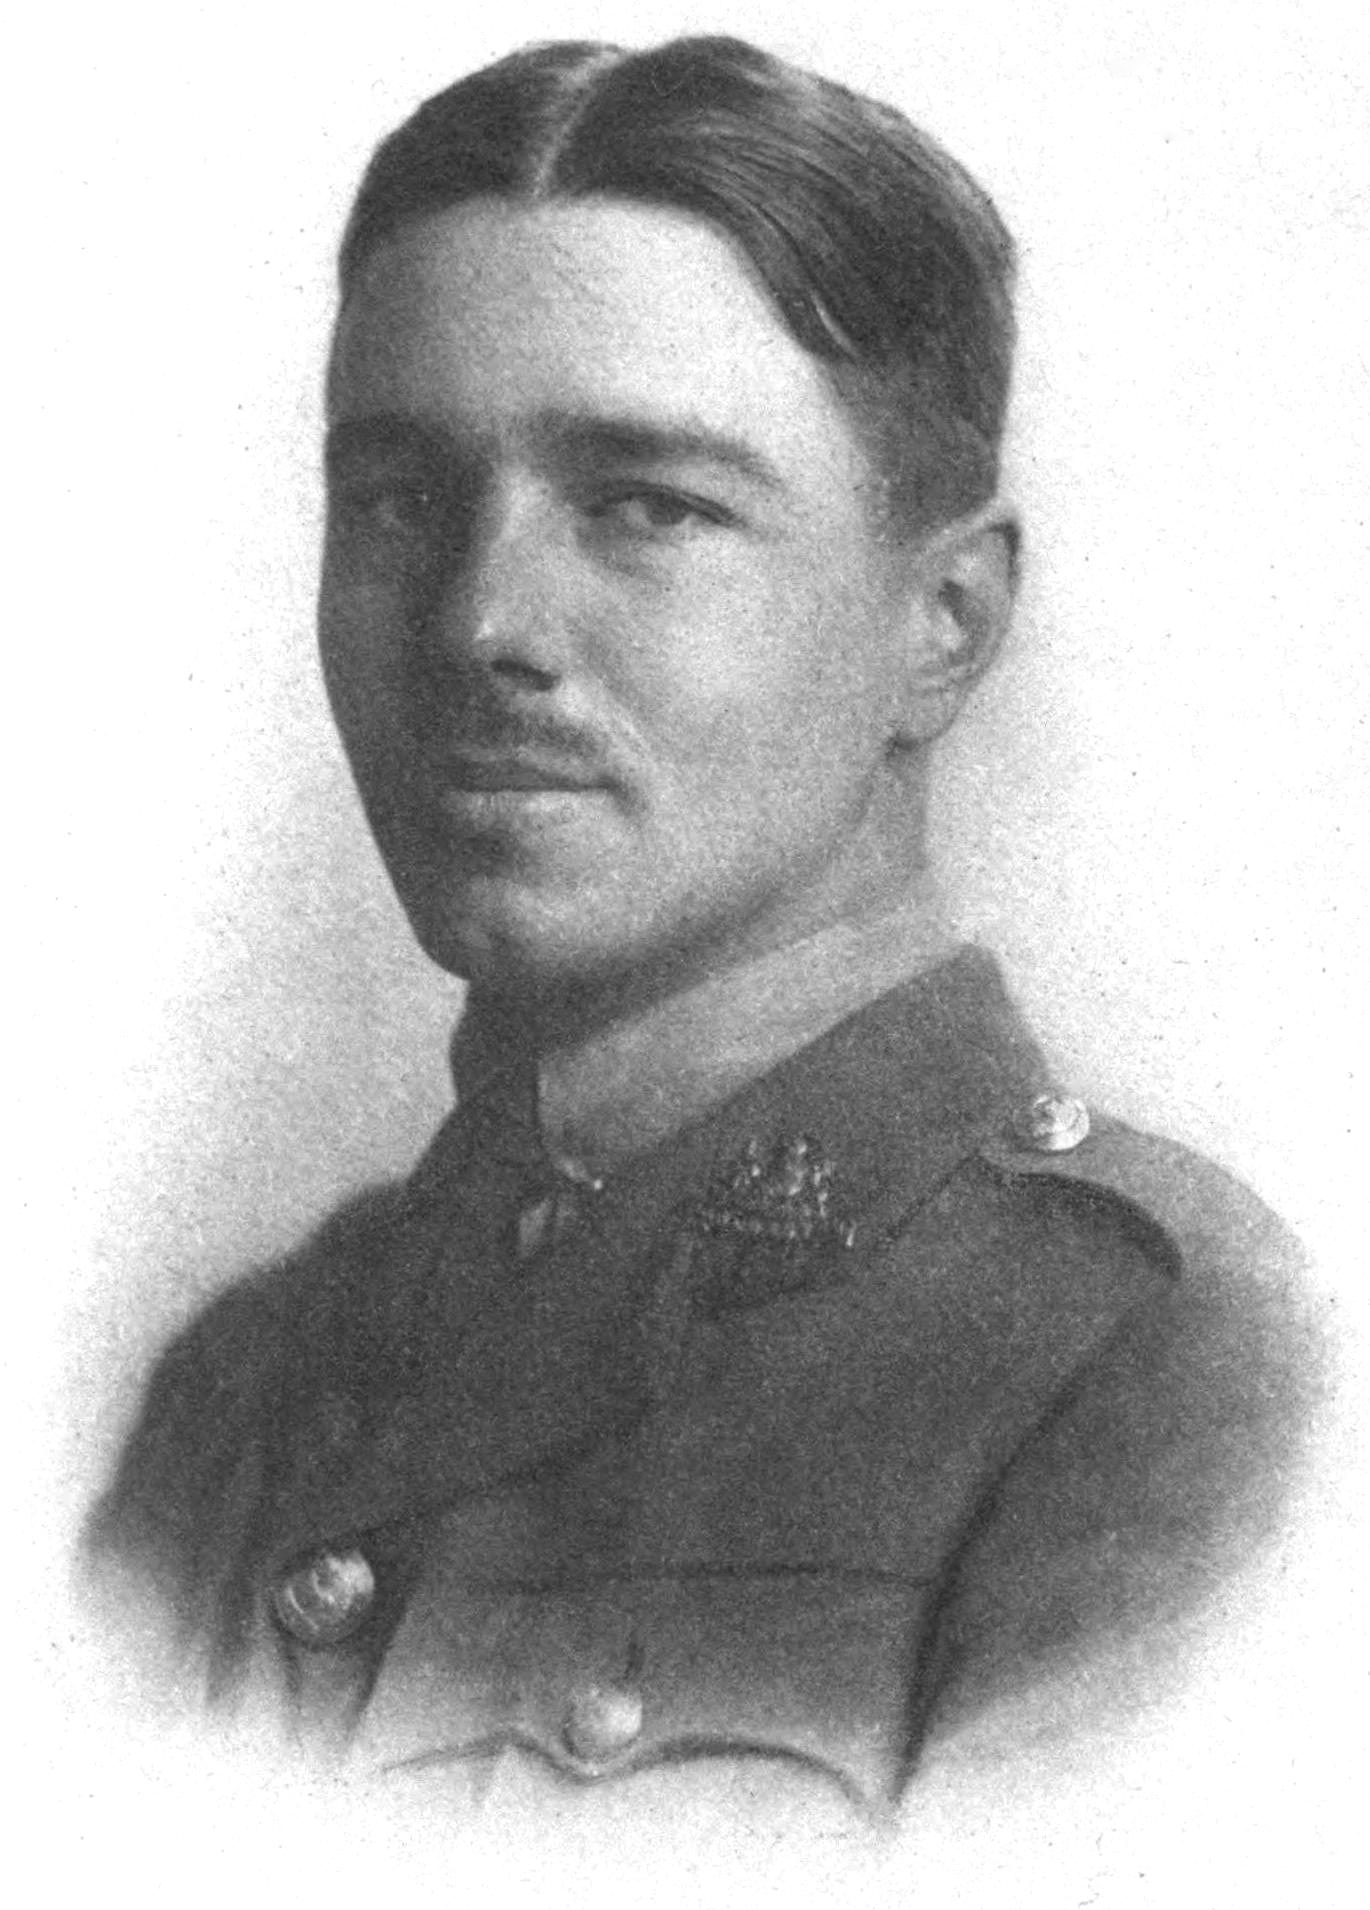 http://upload.wikimedia.org/wikipedia/commons/e/e3/Wilfred_Owen_plate_from_Poems_%281920%29.jpg